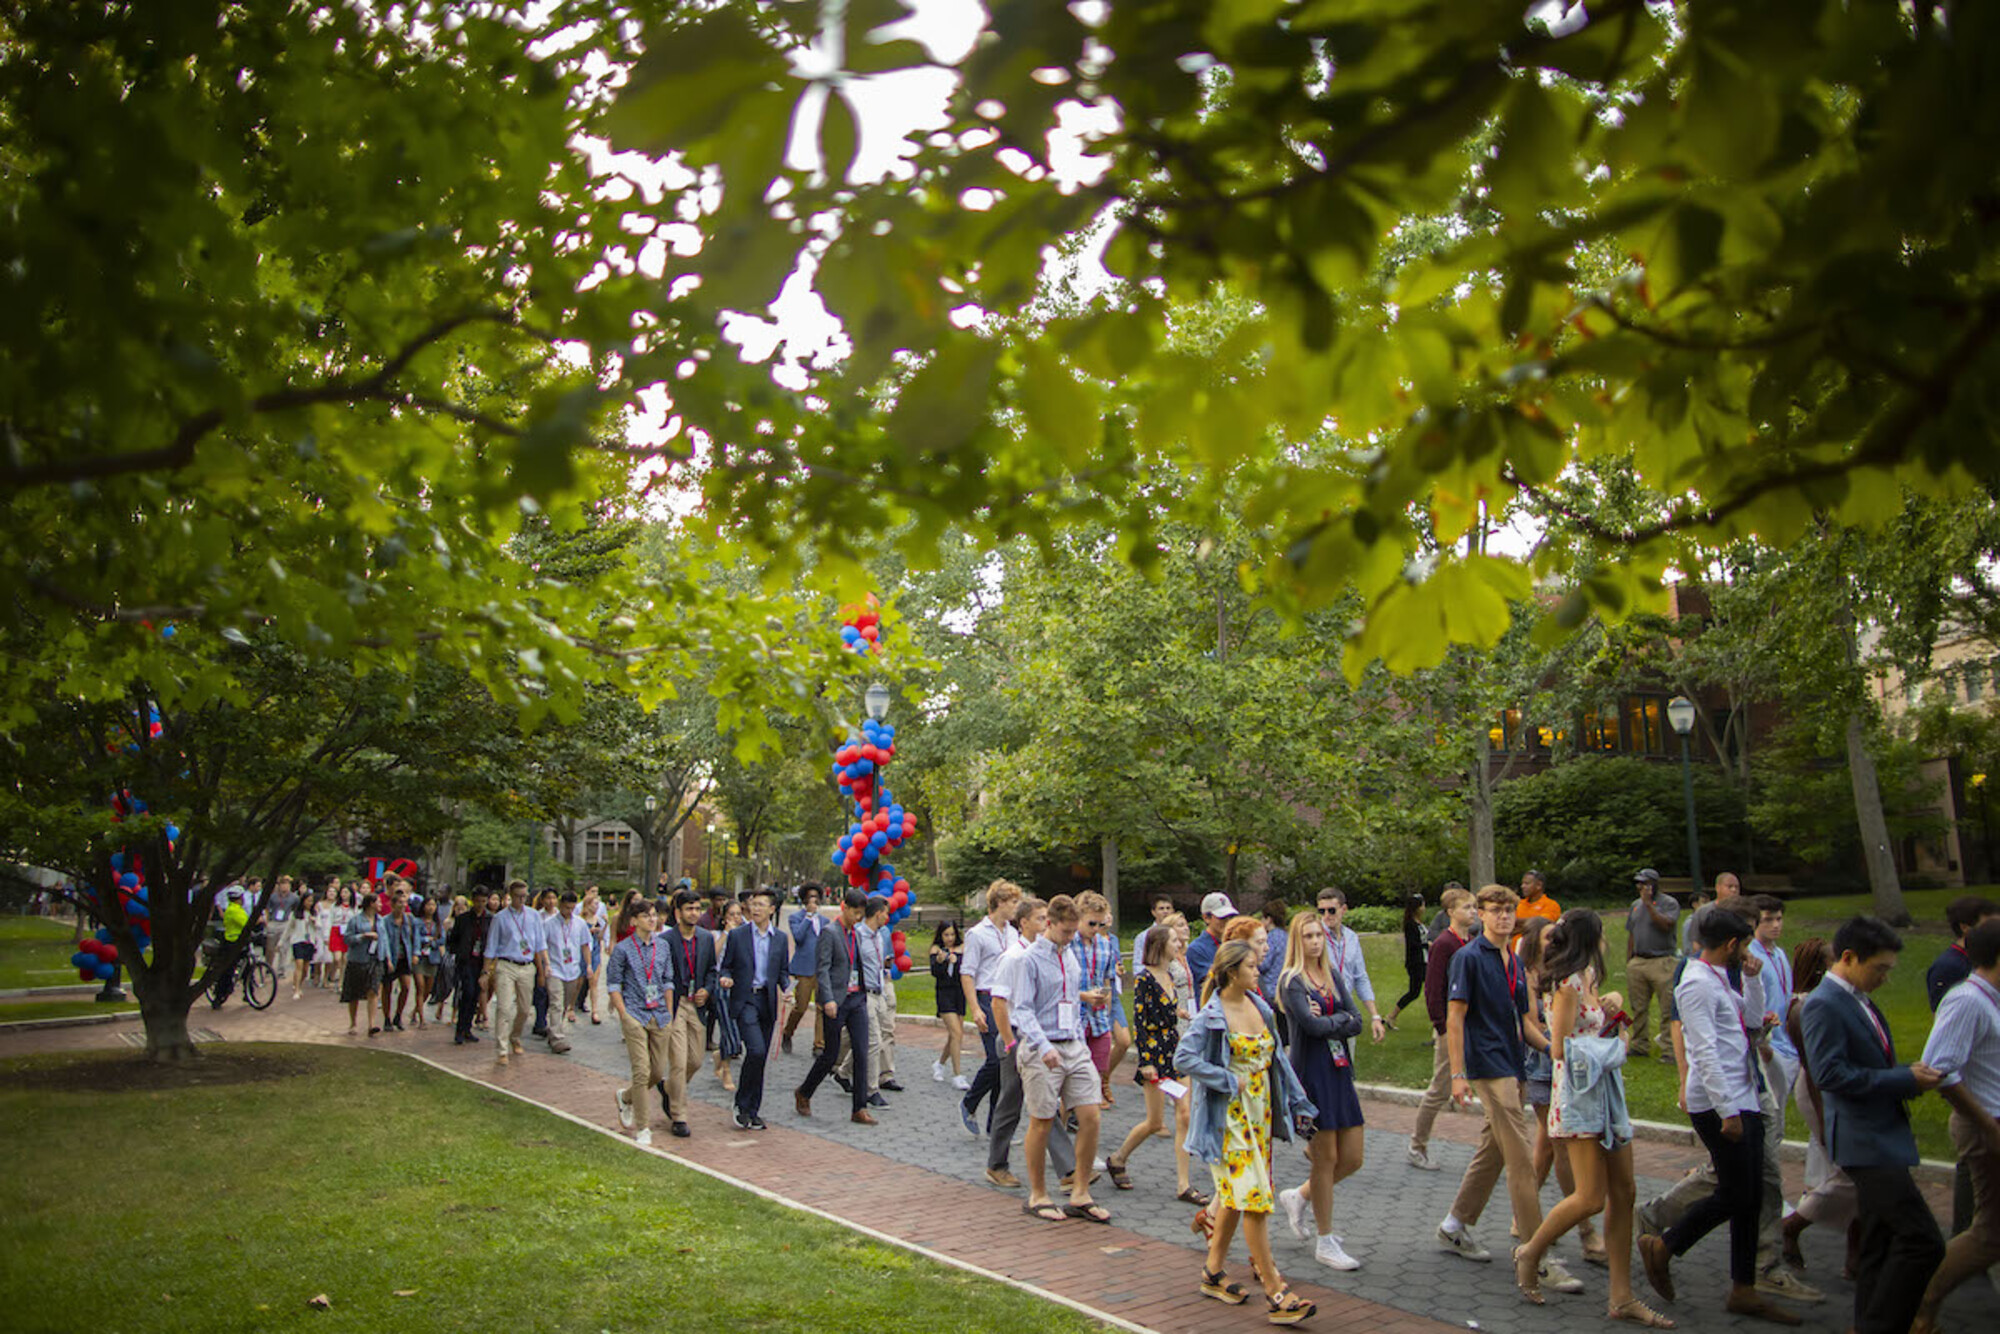 Class of 2023 walks down Locust Walk at dusk towards convocation on College Green.